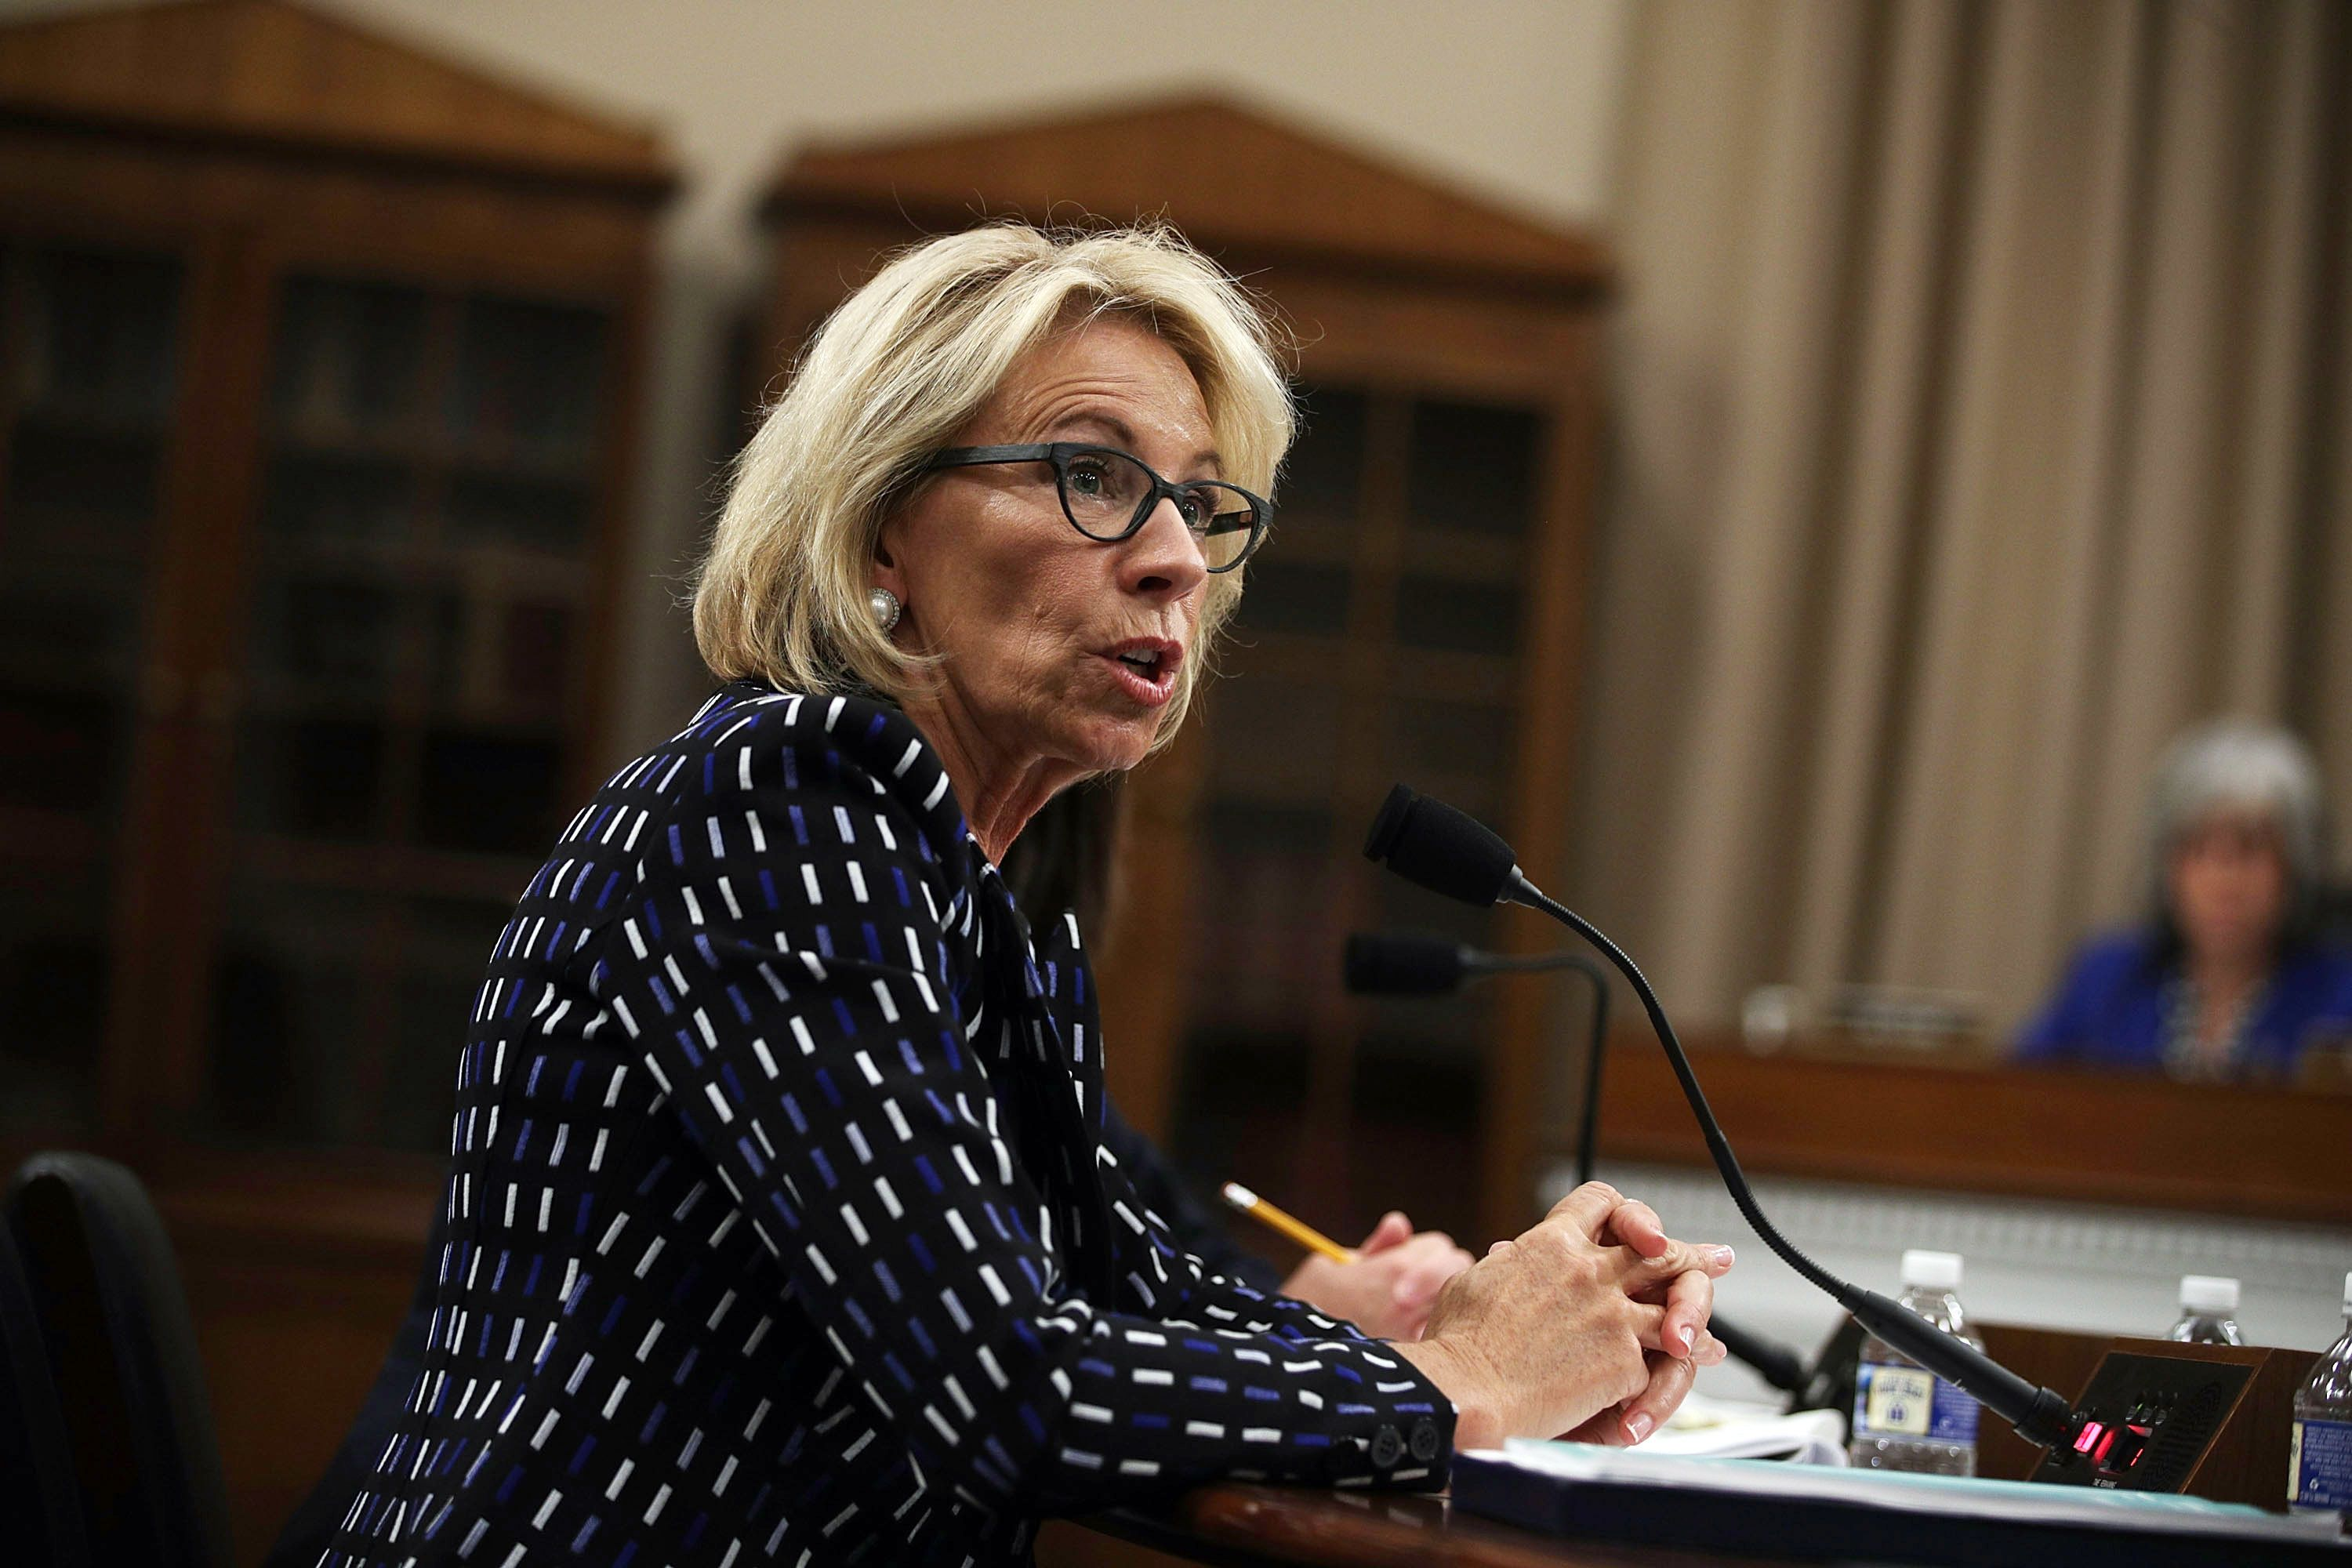 WASHINGTON, DC - MAY 24:  U.S. Secretary of Education Betsy DeVos testifies during a hearing before the Labor, Health and Human Services, Education and Related Agencies Subcommittee of the House Appropriations Committee May 24, 2017 on Capitol Hill in Washington, DC. The subcommittee held a hearing on 'Department of Education Budget.'  (Photo by Alex Wong/Getty Images)